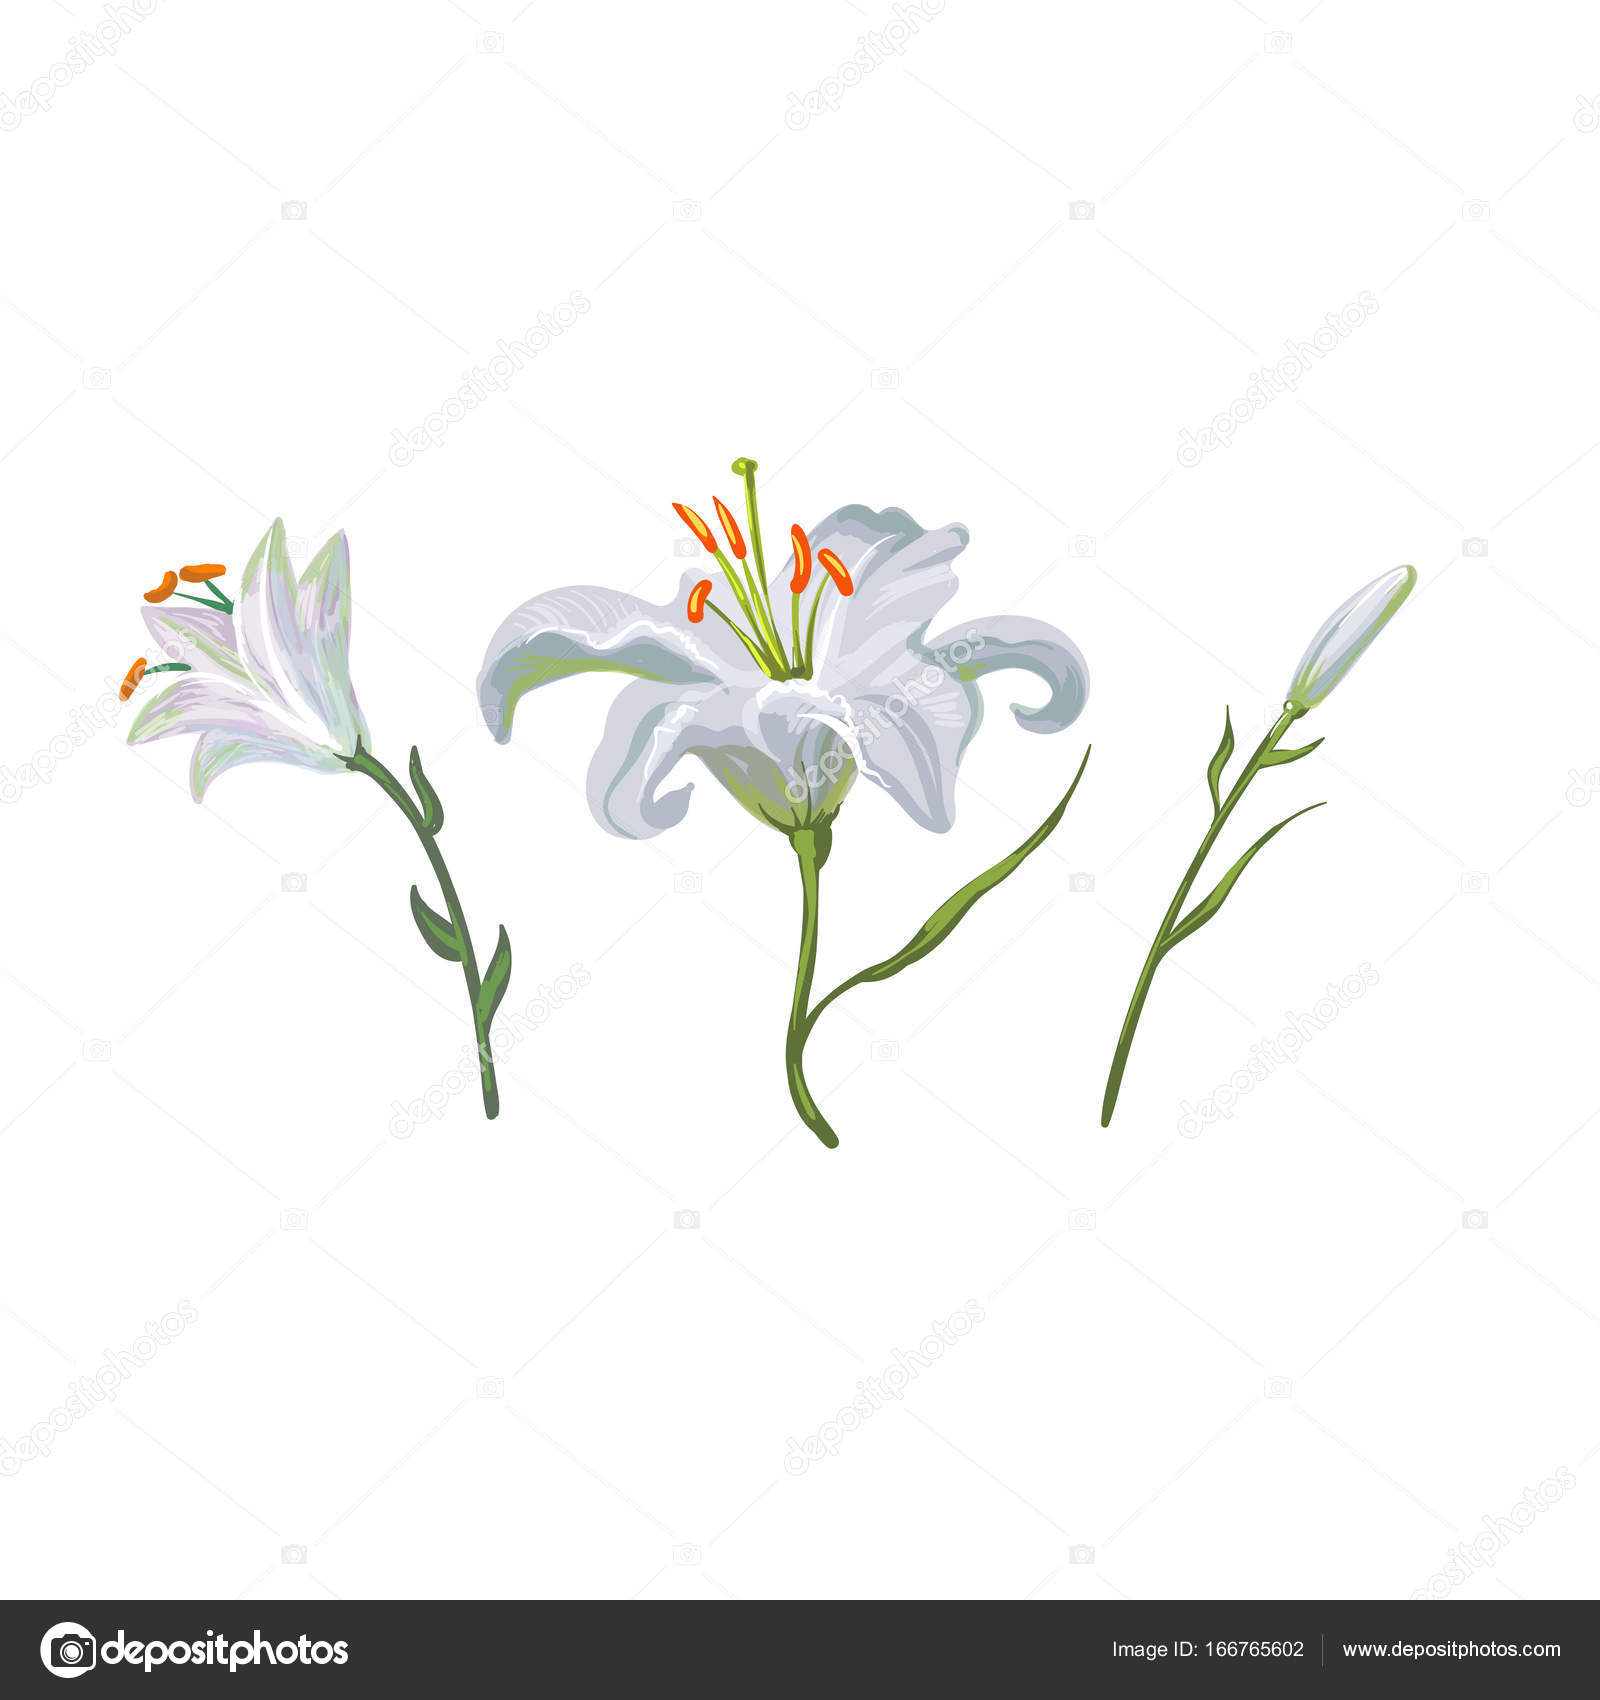 Illustration With White Lily Flowers In Different Stages Isolated On